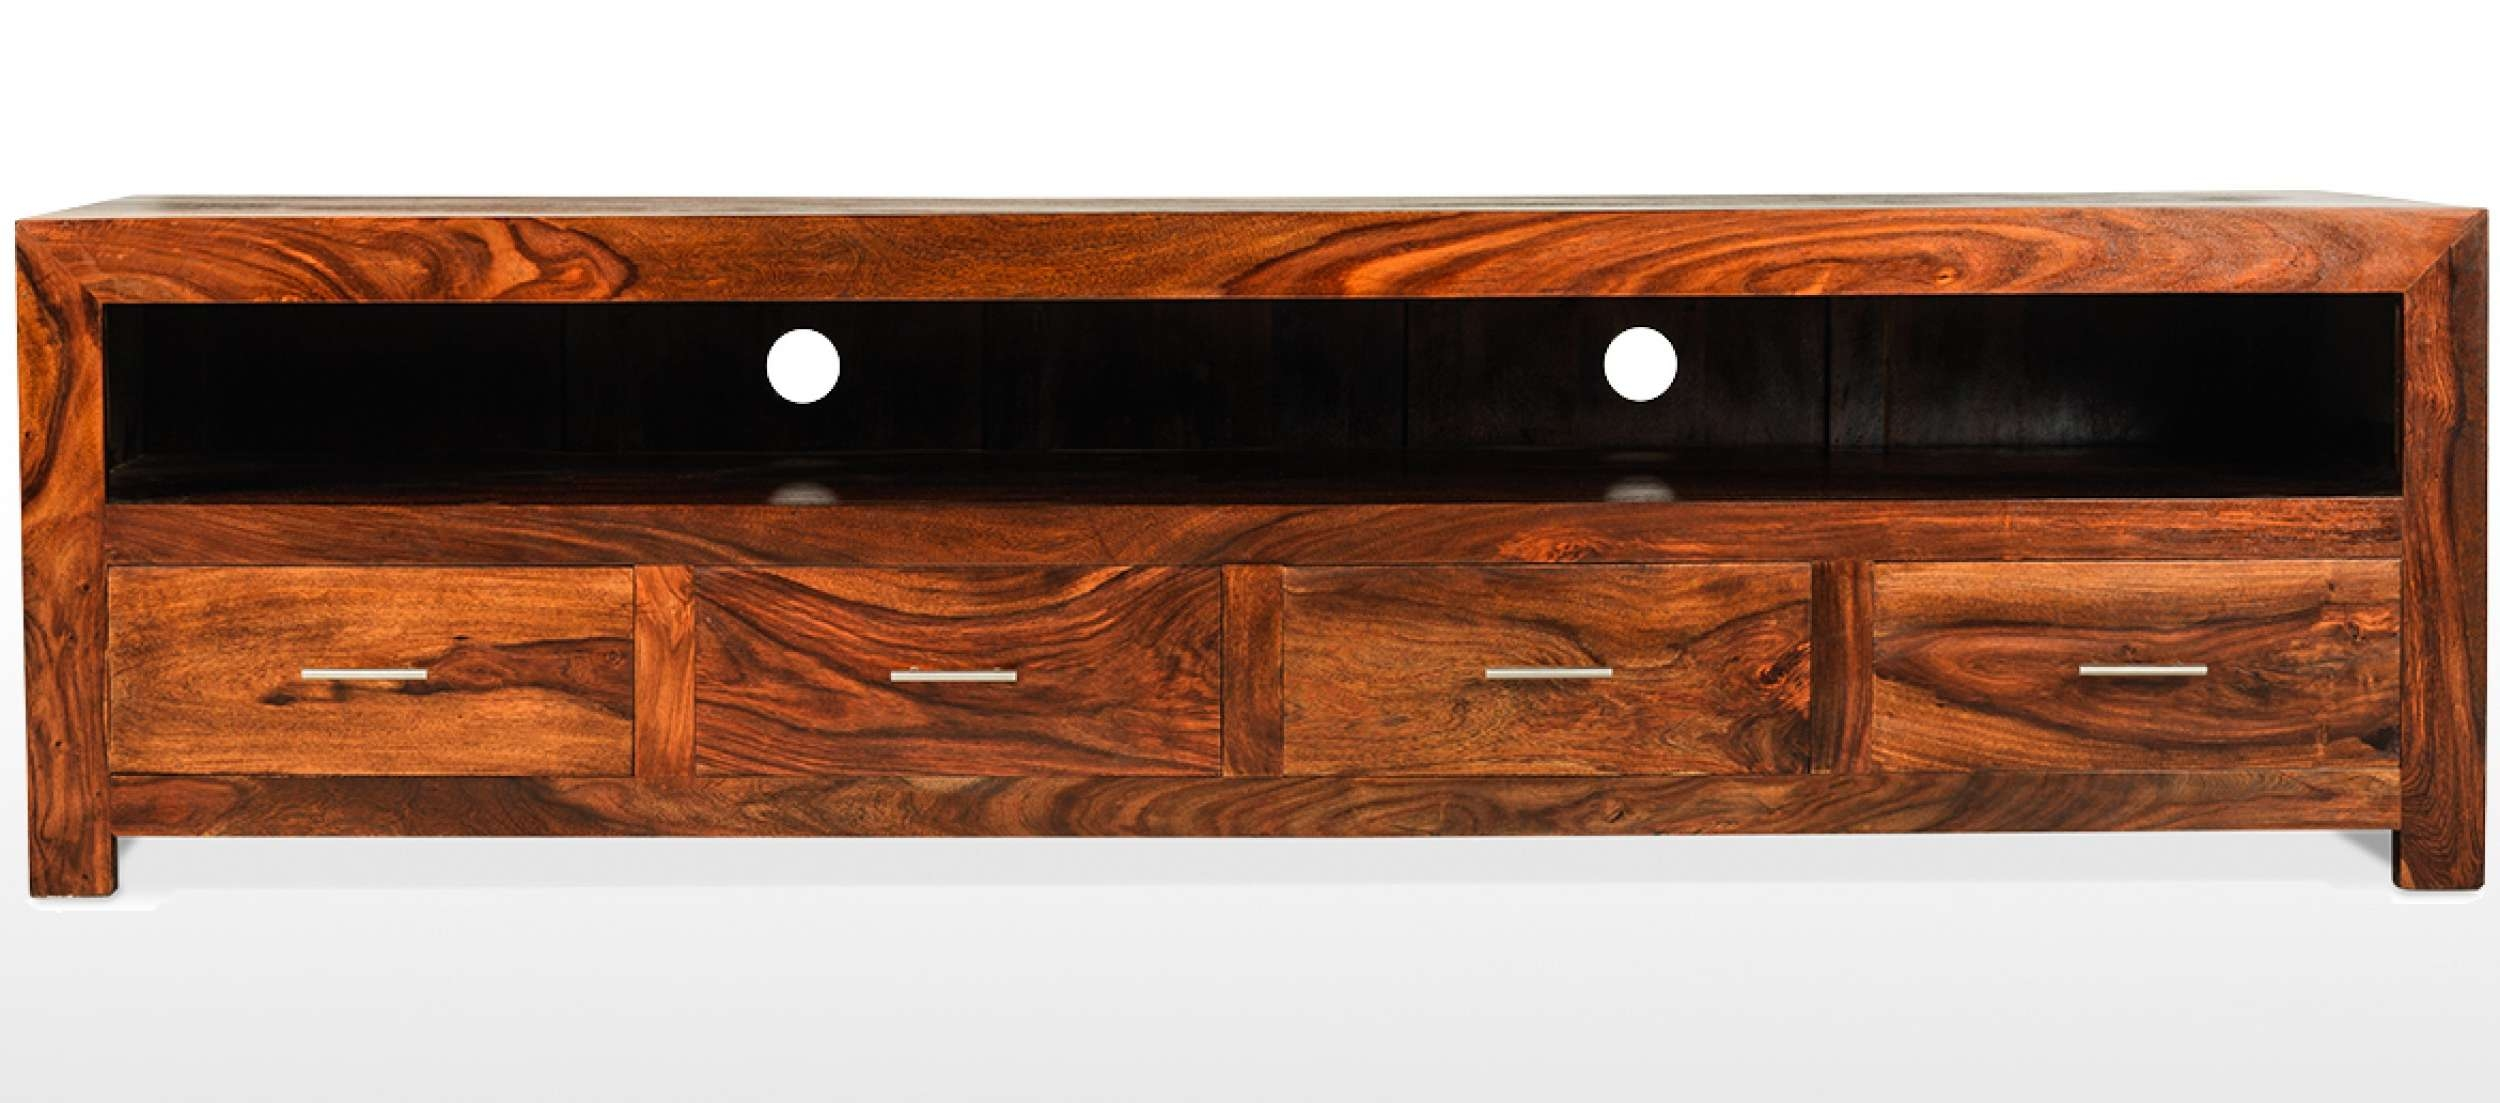 Cube Sheesham Long Plasma Tv Cabinet | Quercus Living With Regard To Long Tv Cabinets Furniture (View 7 of 20)